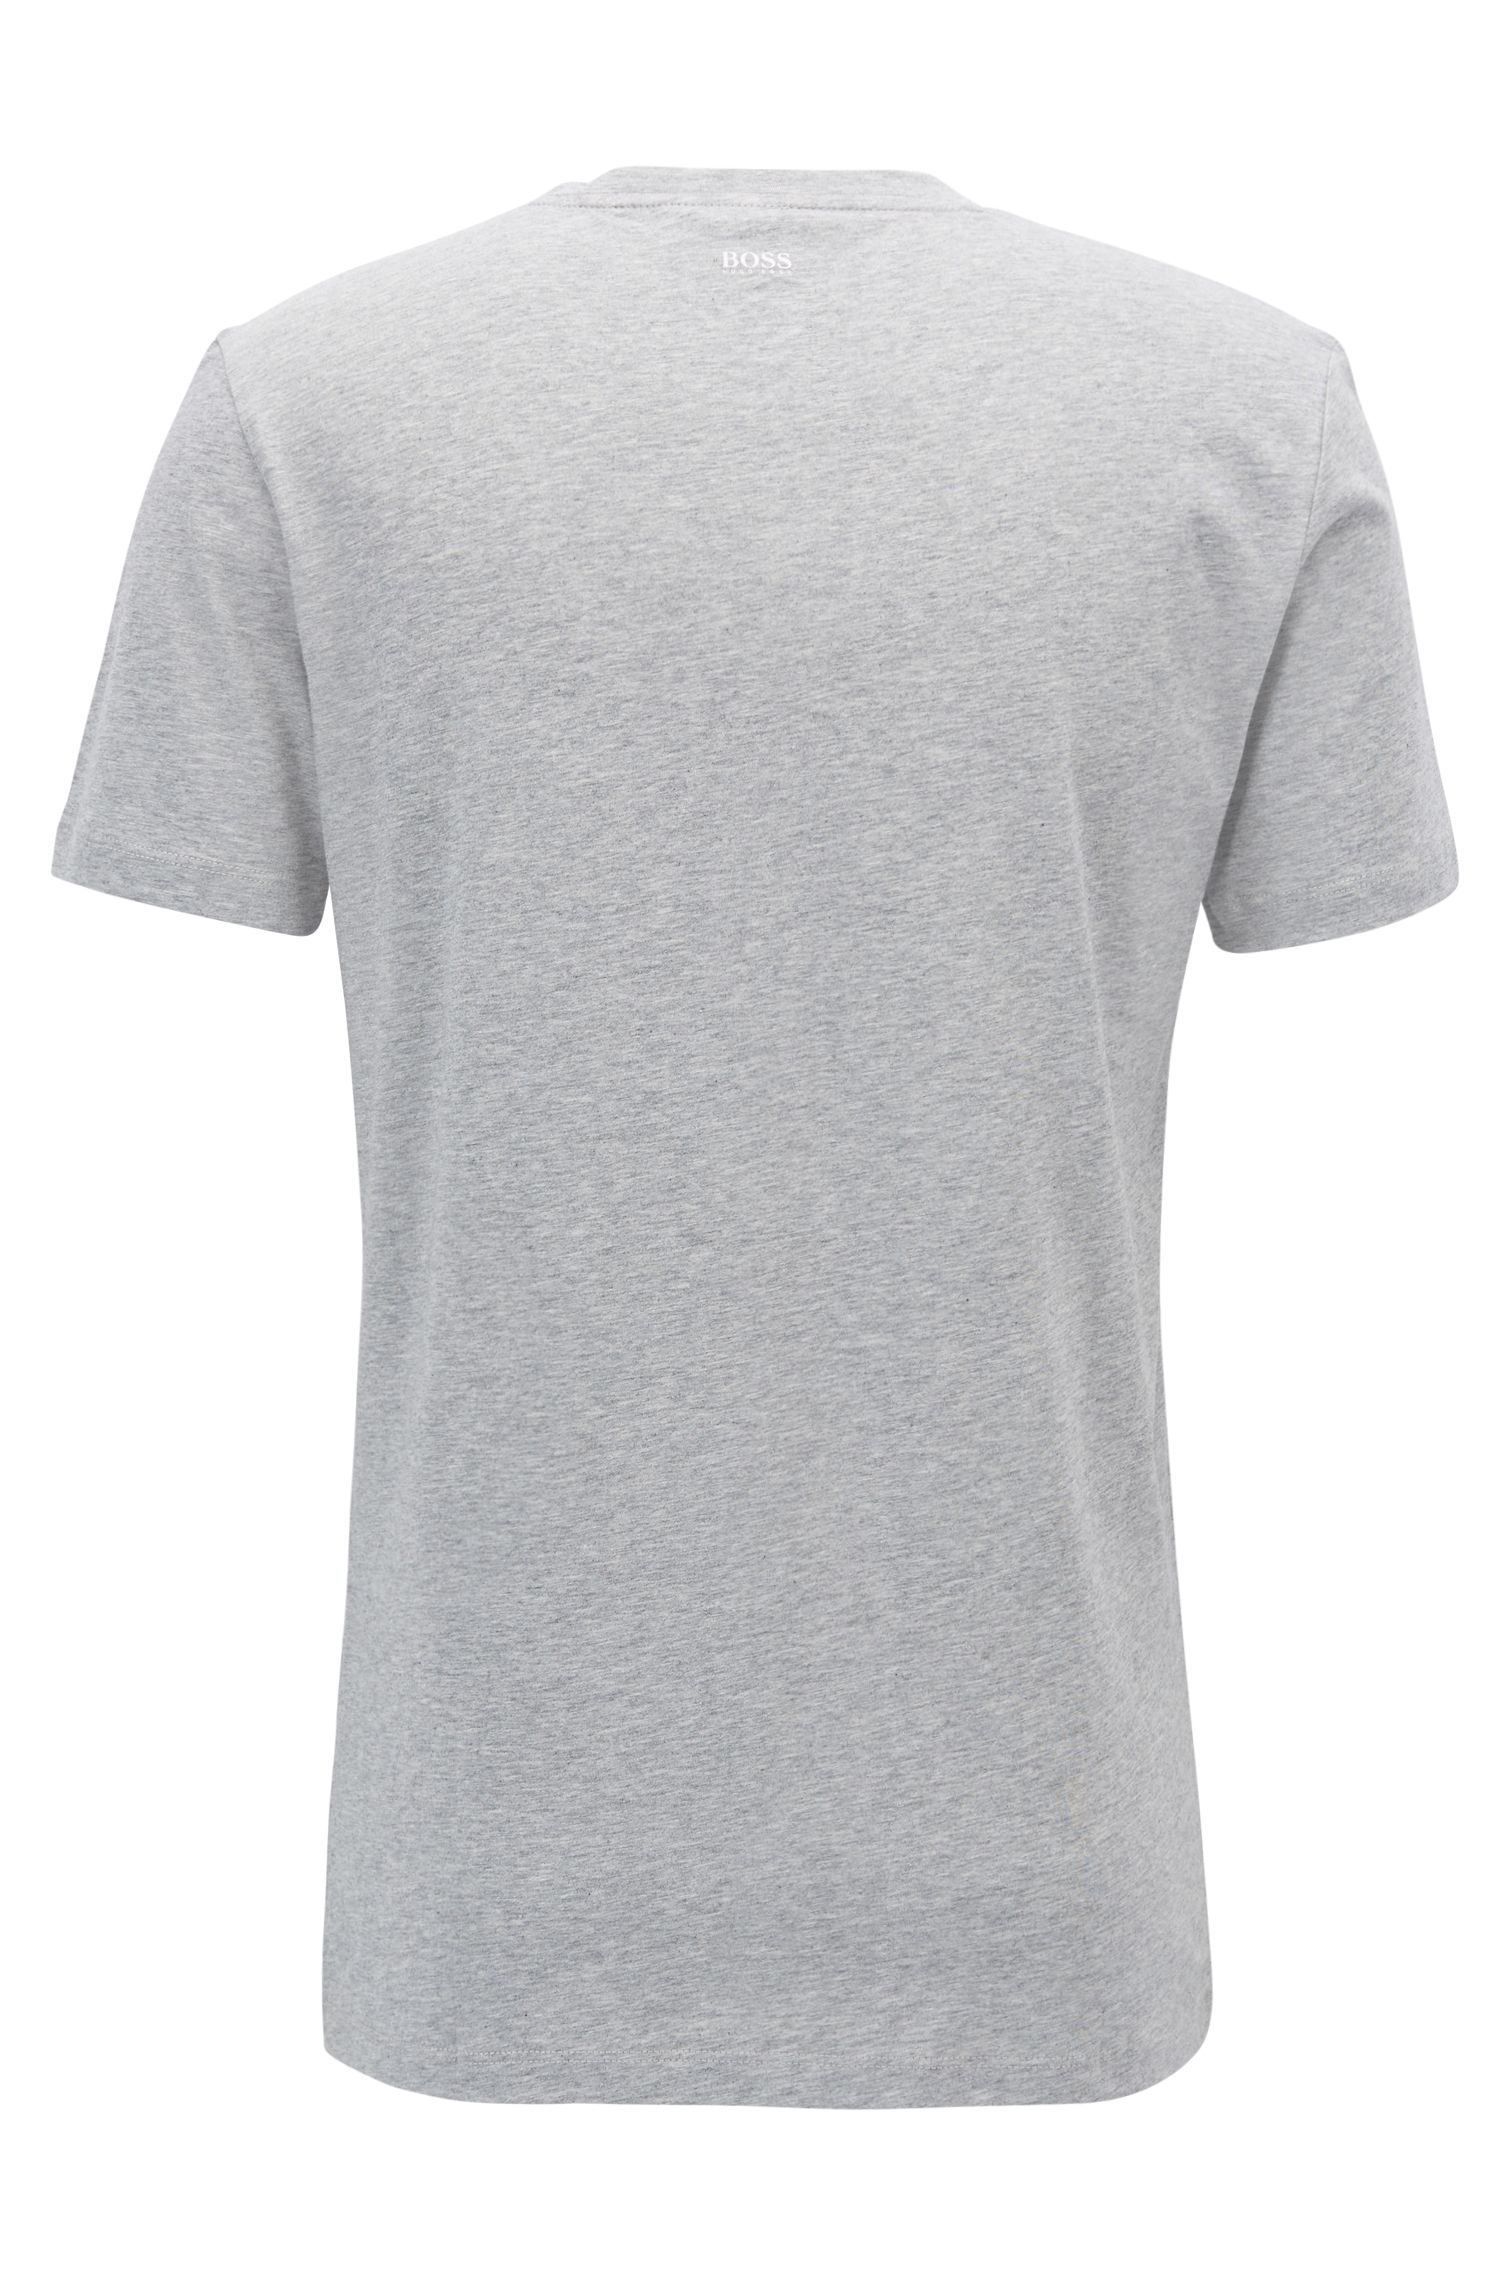 Cuba-Print Cotton Jersey Graphic T-Shirt | Tauno, Grey